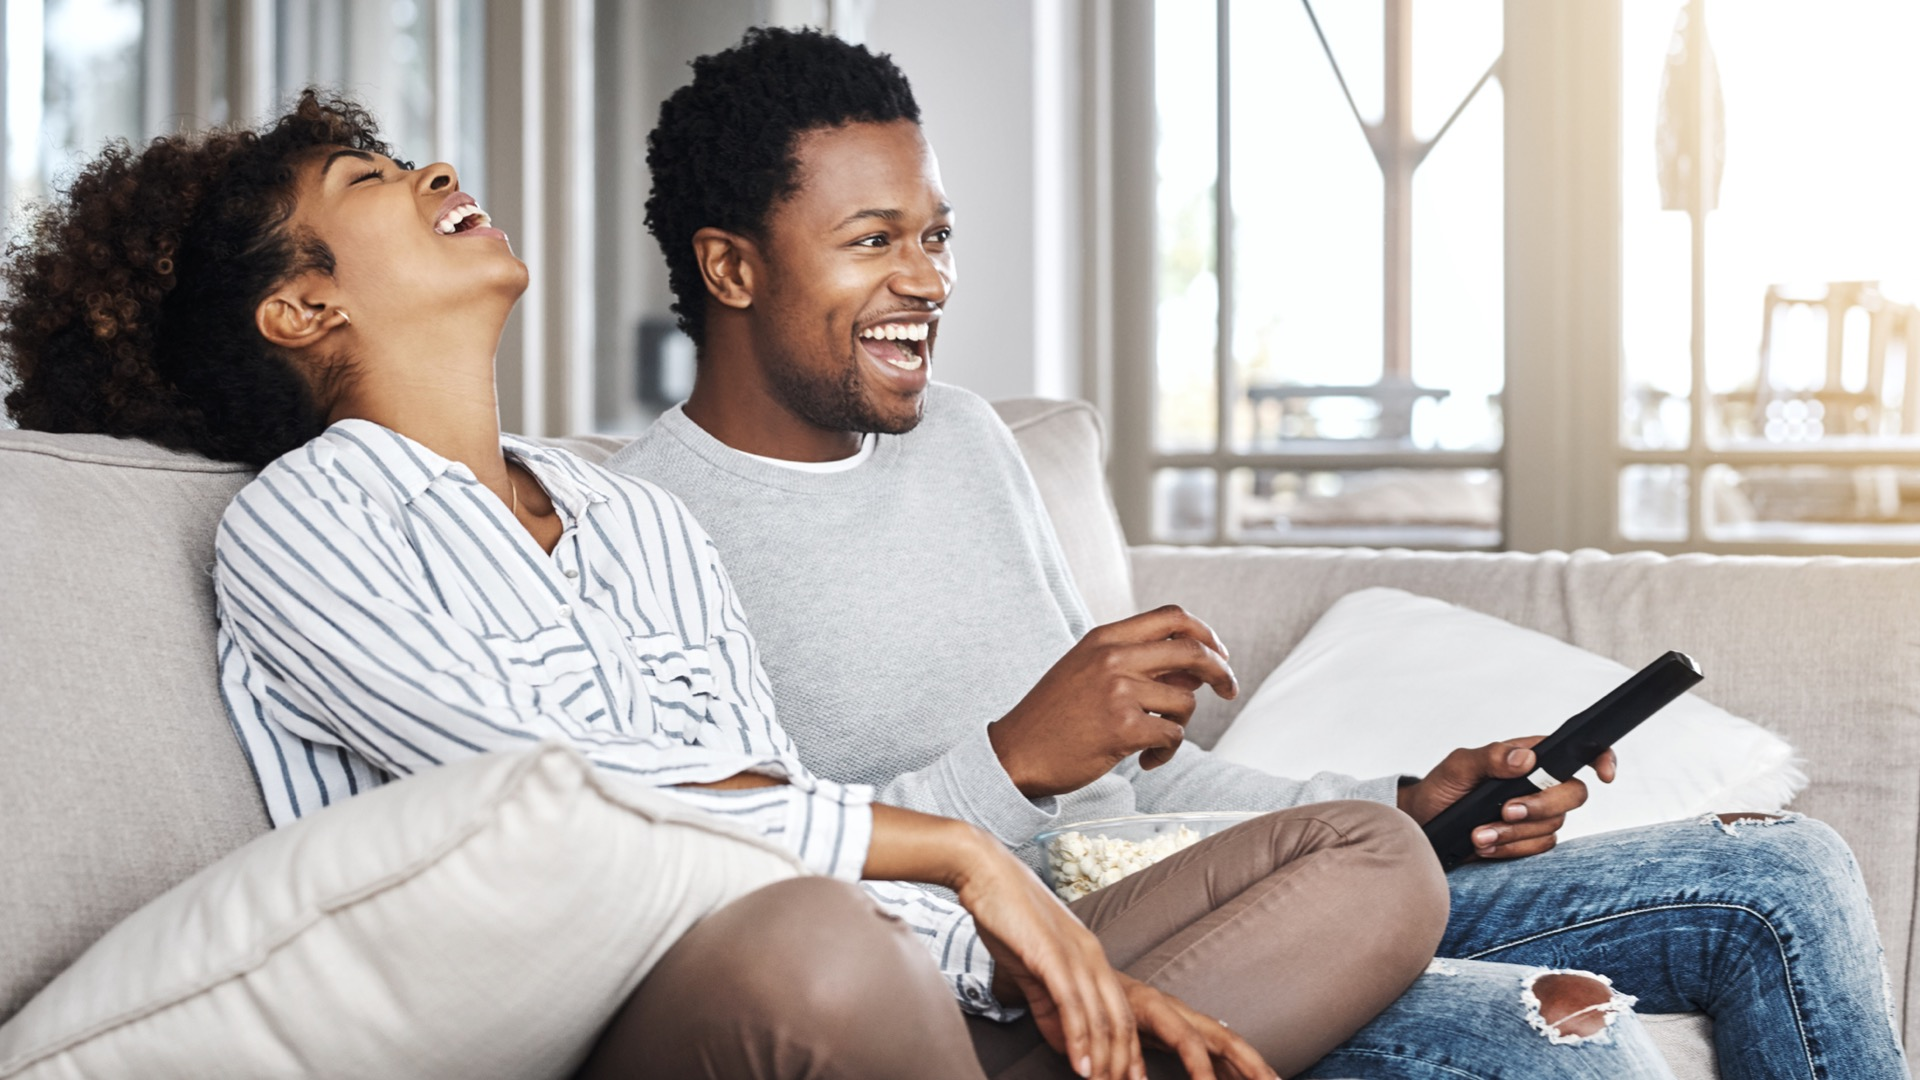 A couple sitting on a couch watching a movie.